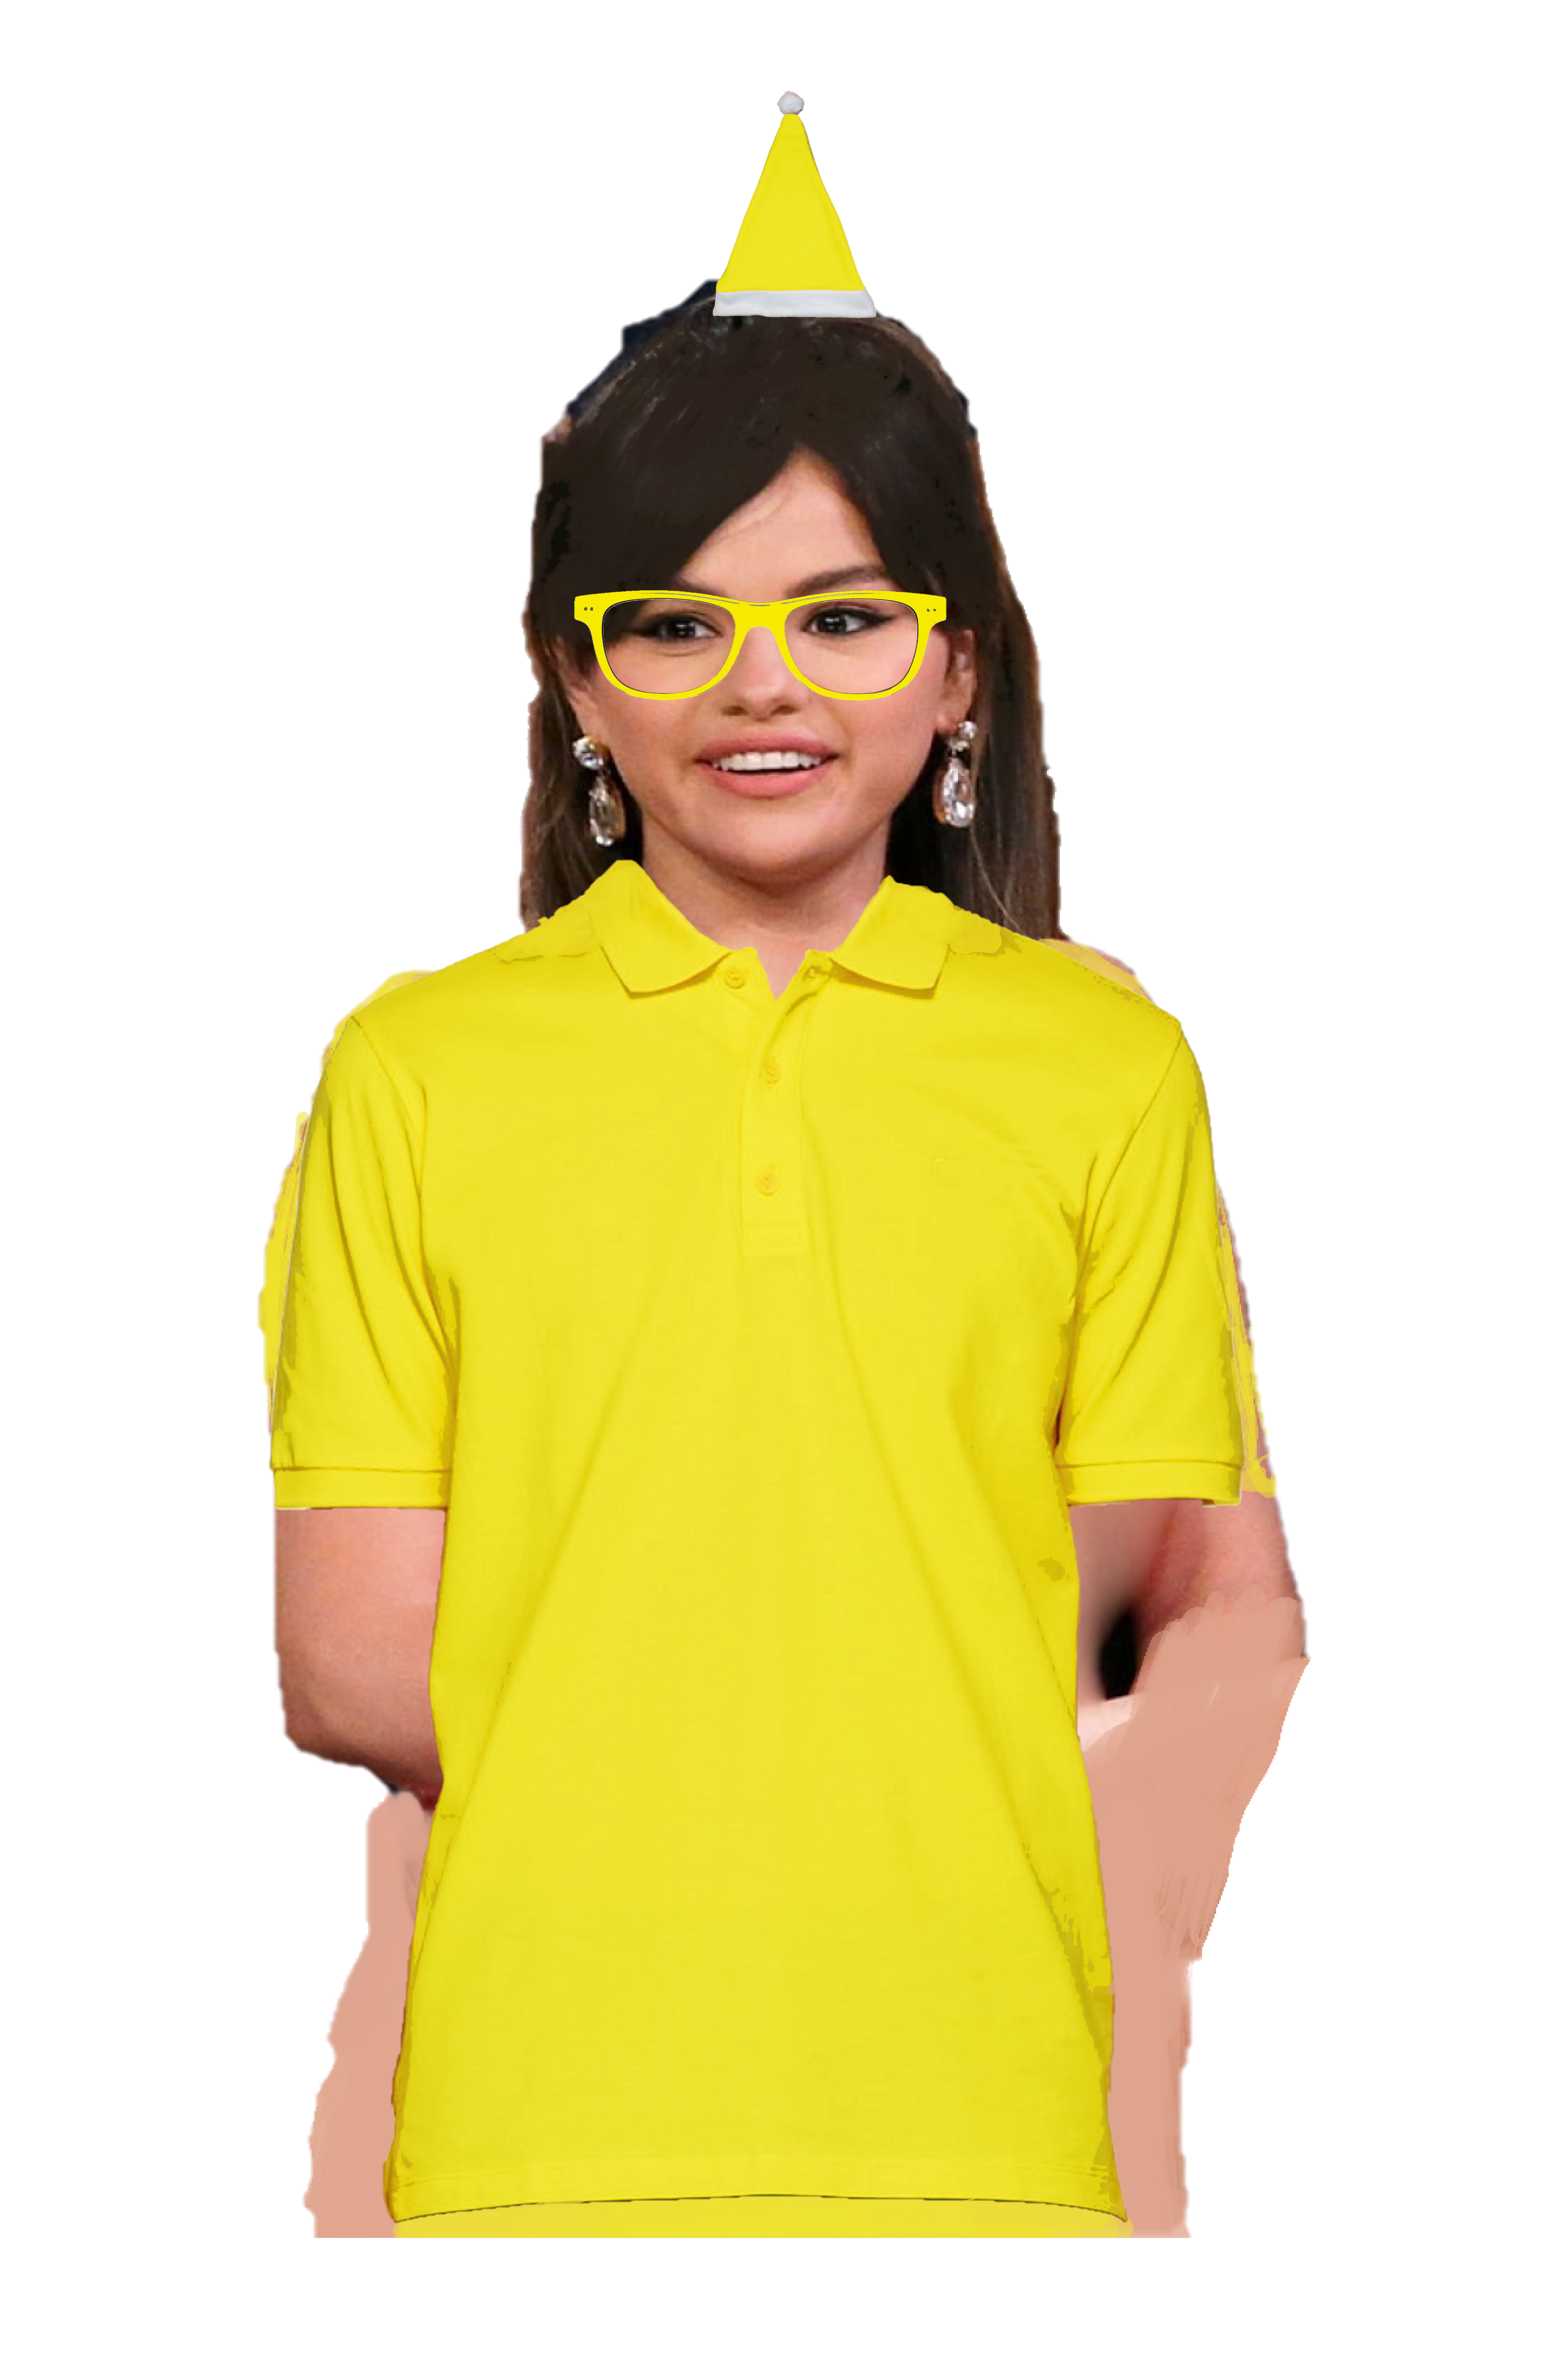 Selena Gomez Long Brown Hair With A Clip Wearing A Yellow Santa Claus Hat Glasses Polo Shirt In 2020 Yellow Polo Shirt Long Brown Hair Polo Shirt